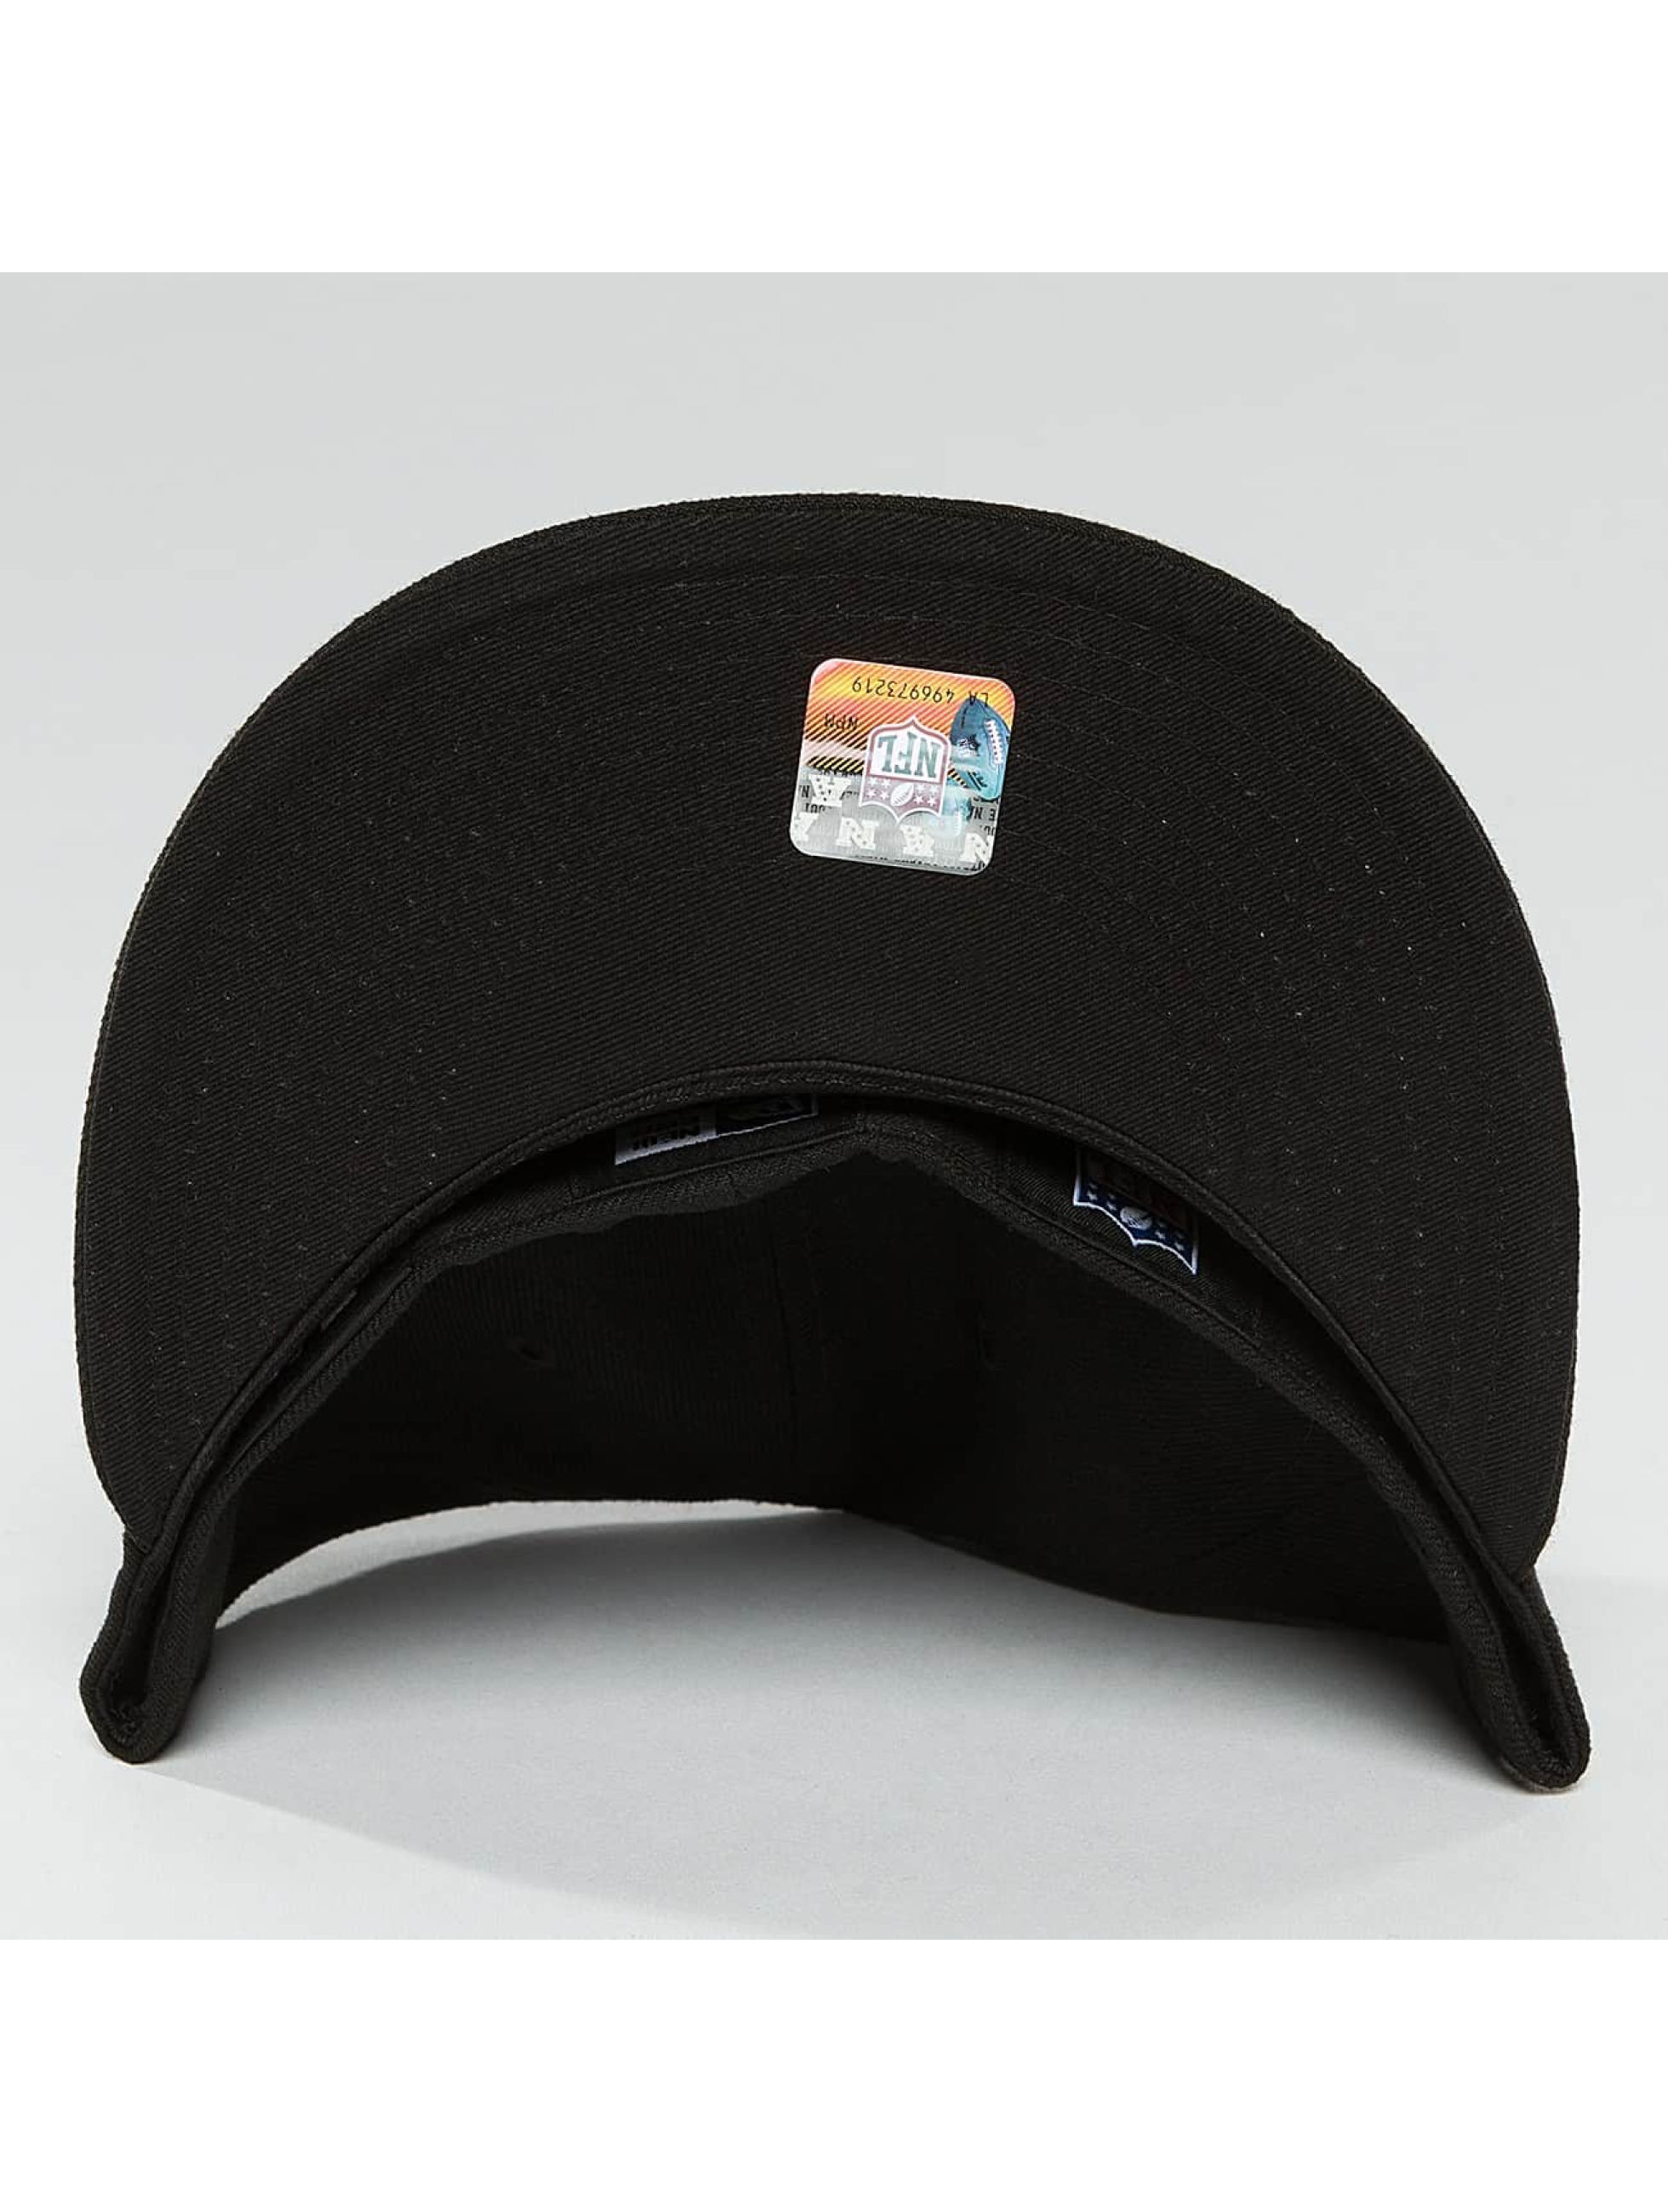 New Era Fitted Cap Black Graphite Seattle Seahawks 59Fifty black